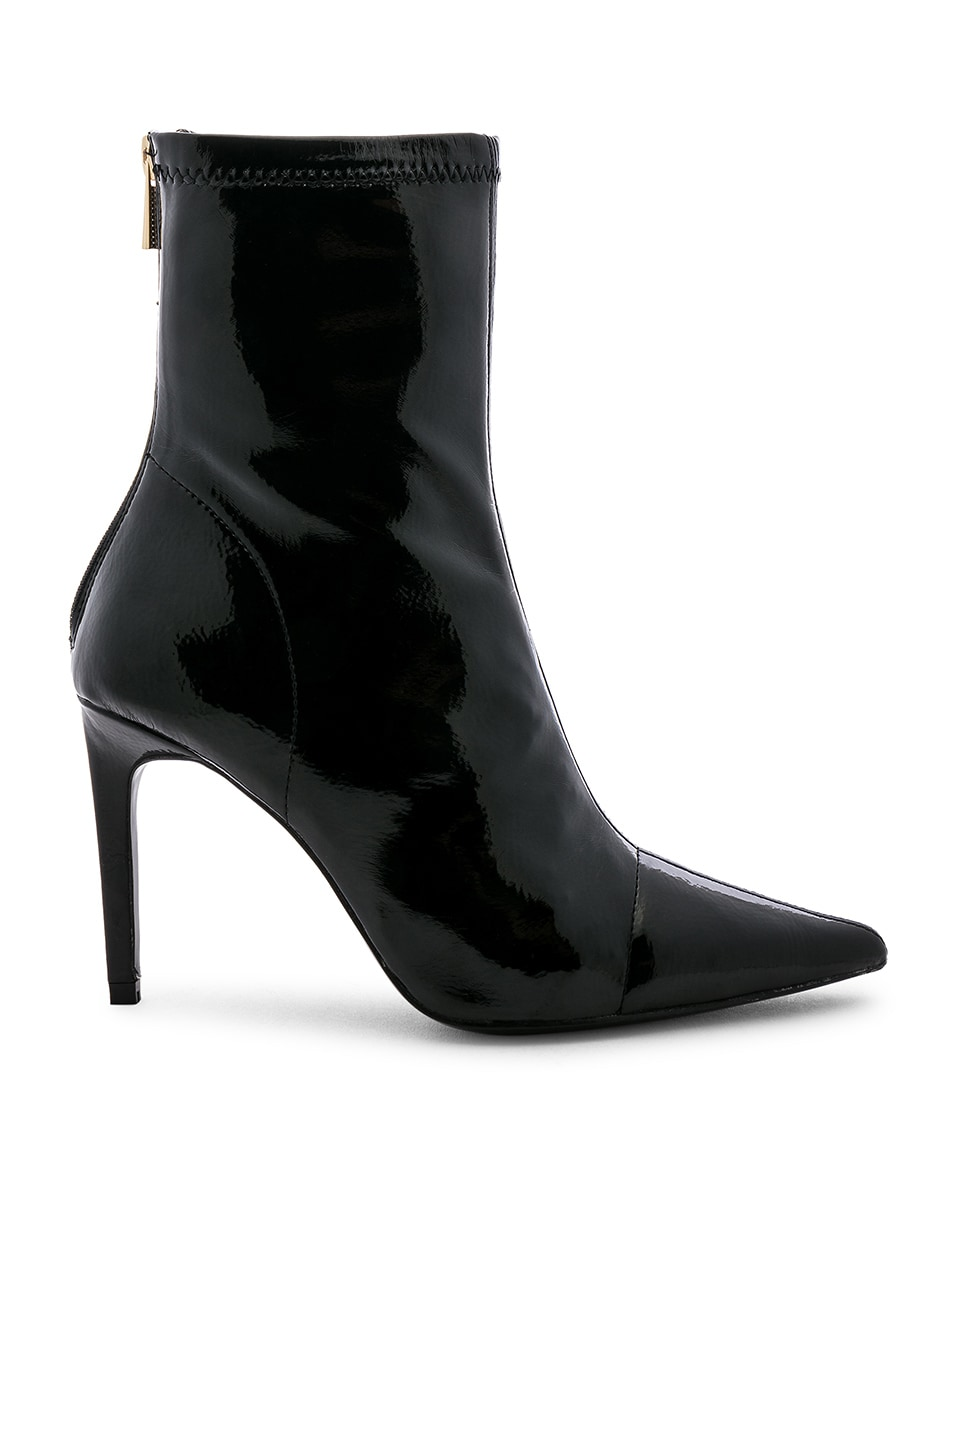 RAYE Bevy Bootie in Black